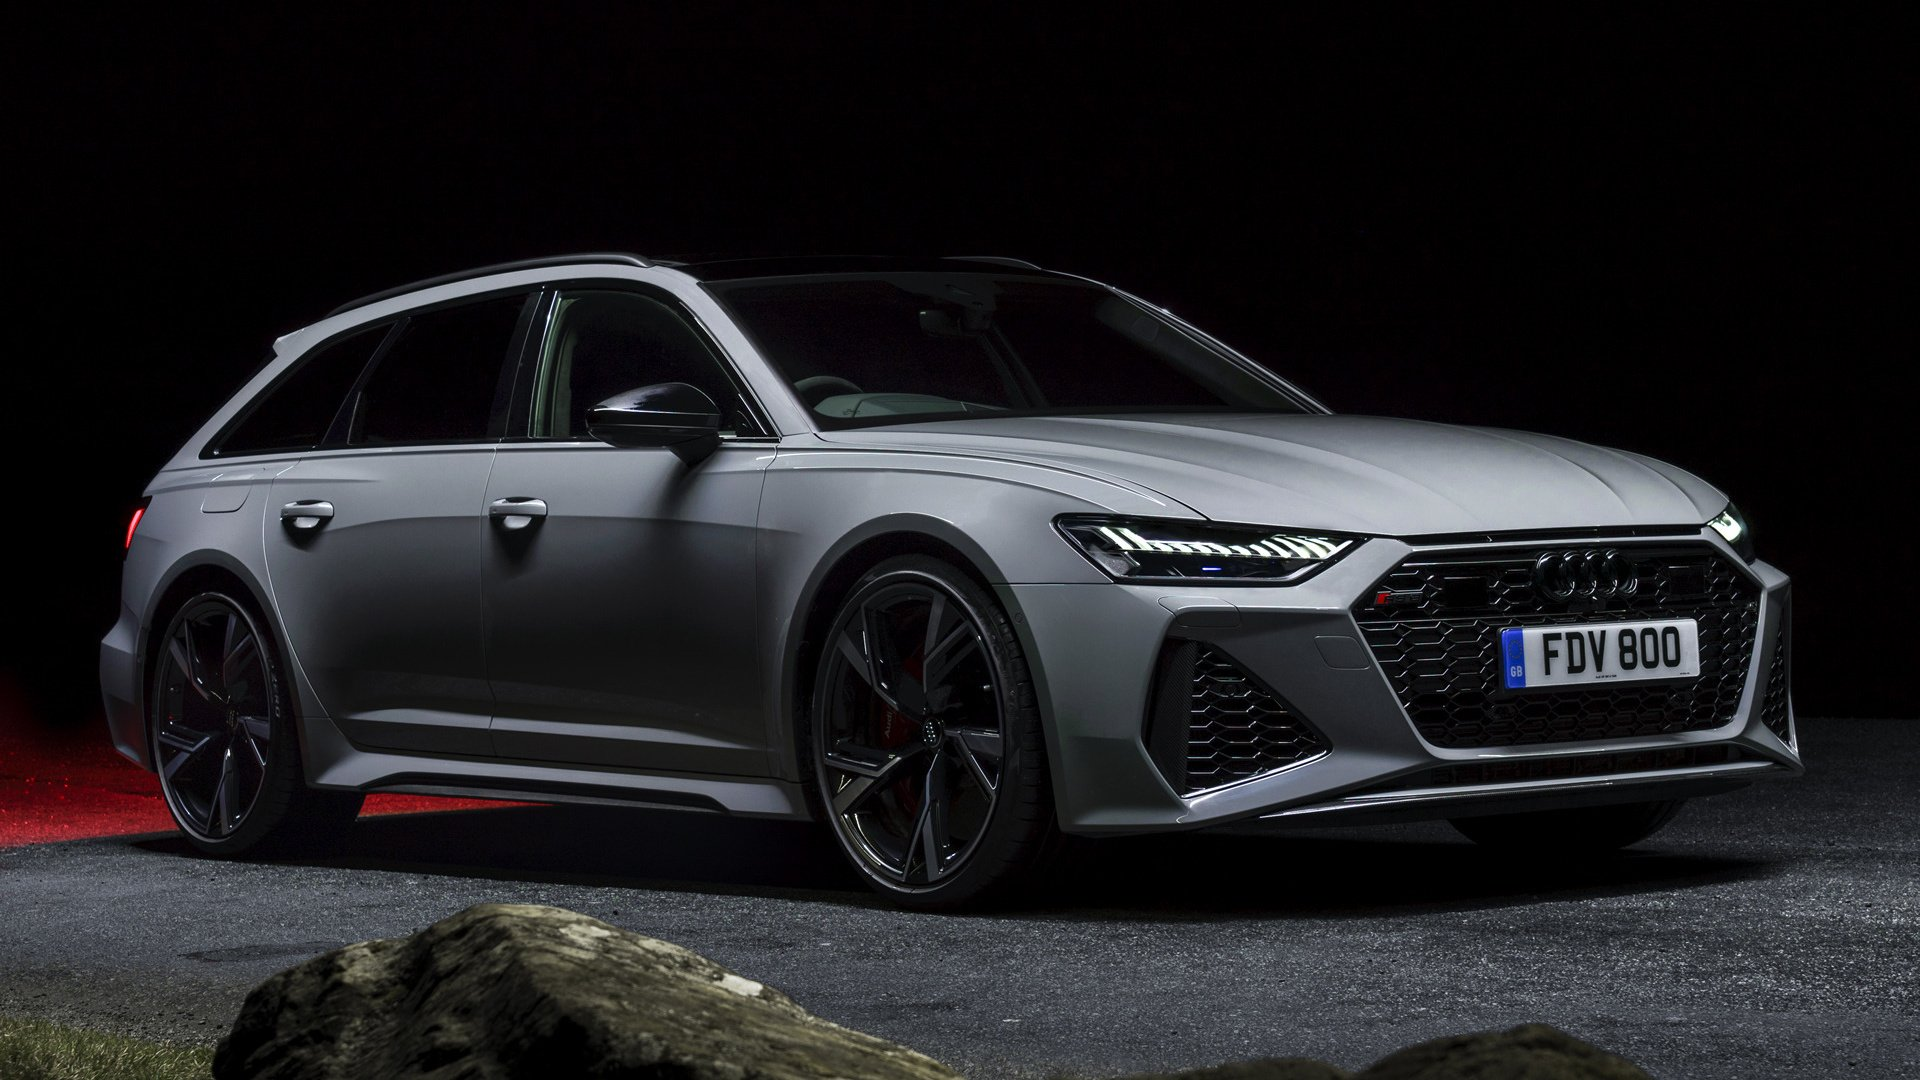 2020 Audi Rs6 Avant Hd Wallpaper Background Image 1920x1080 Id 1070088 Wallpaper Abyss